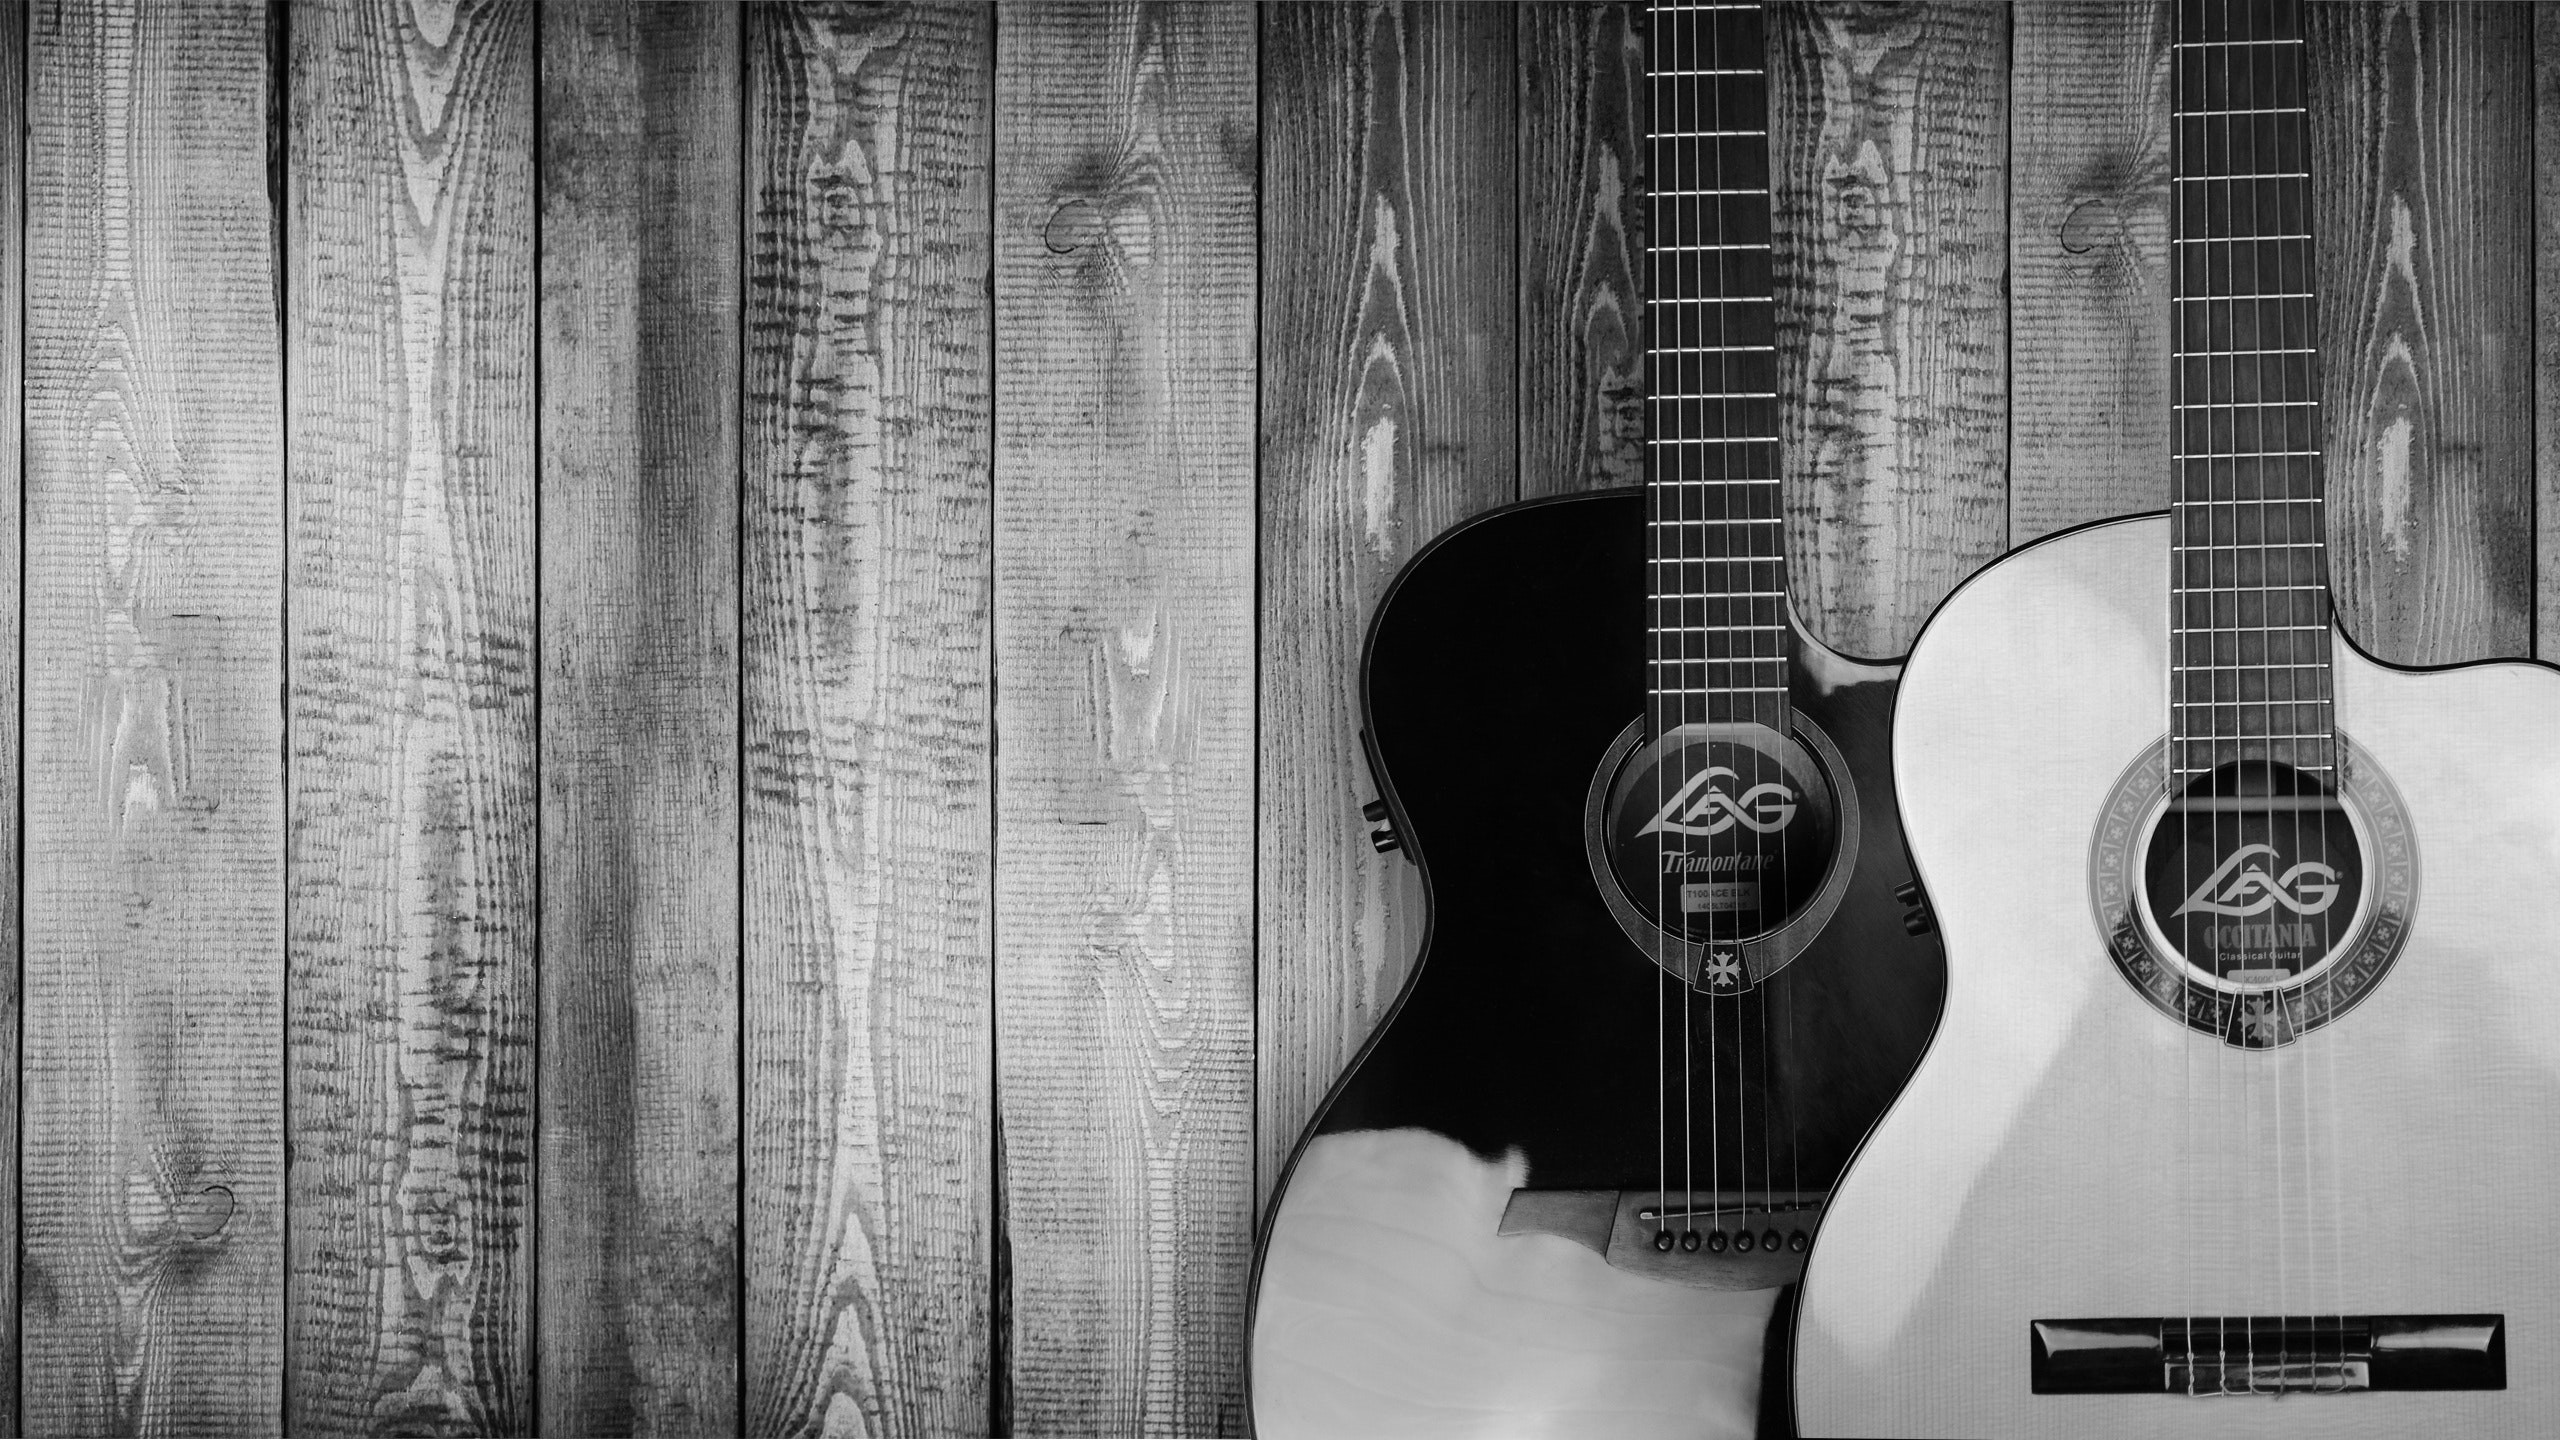 2560x1440 Two Grayscale Acoustic Guitars. Pixabay